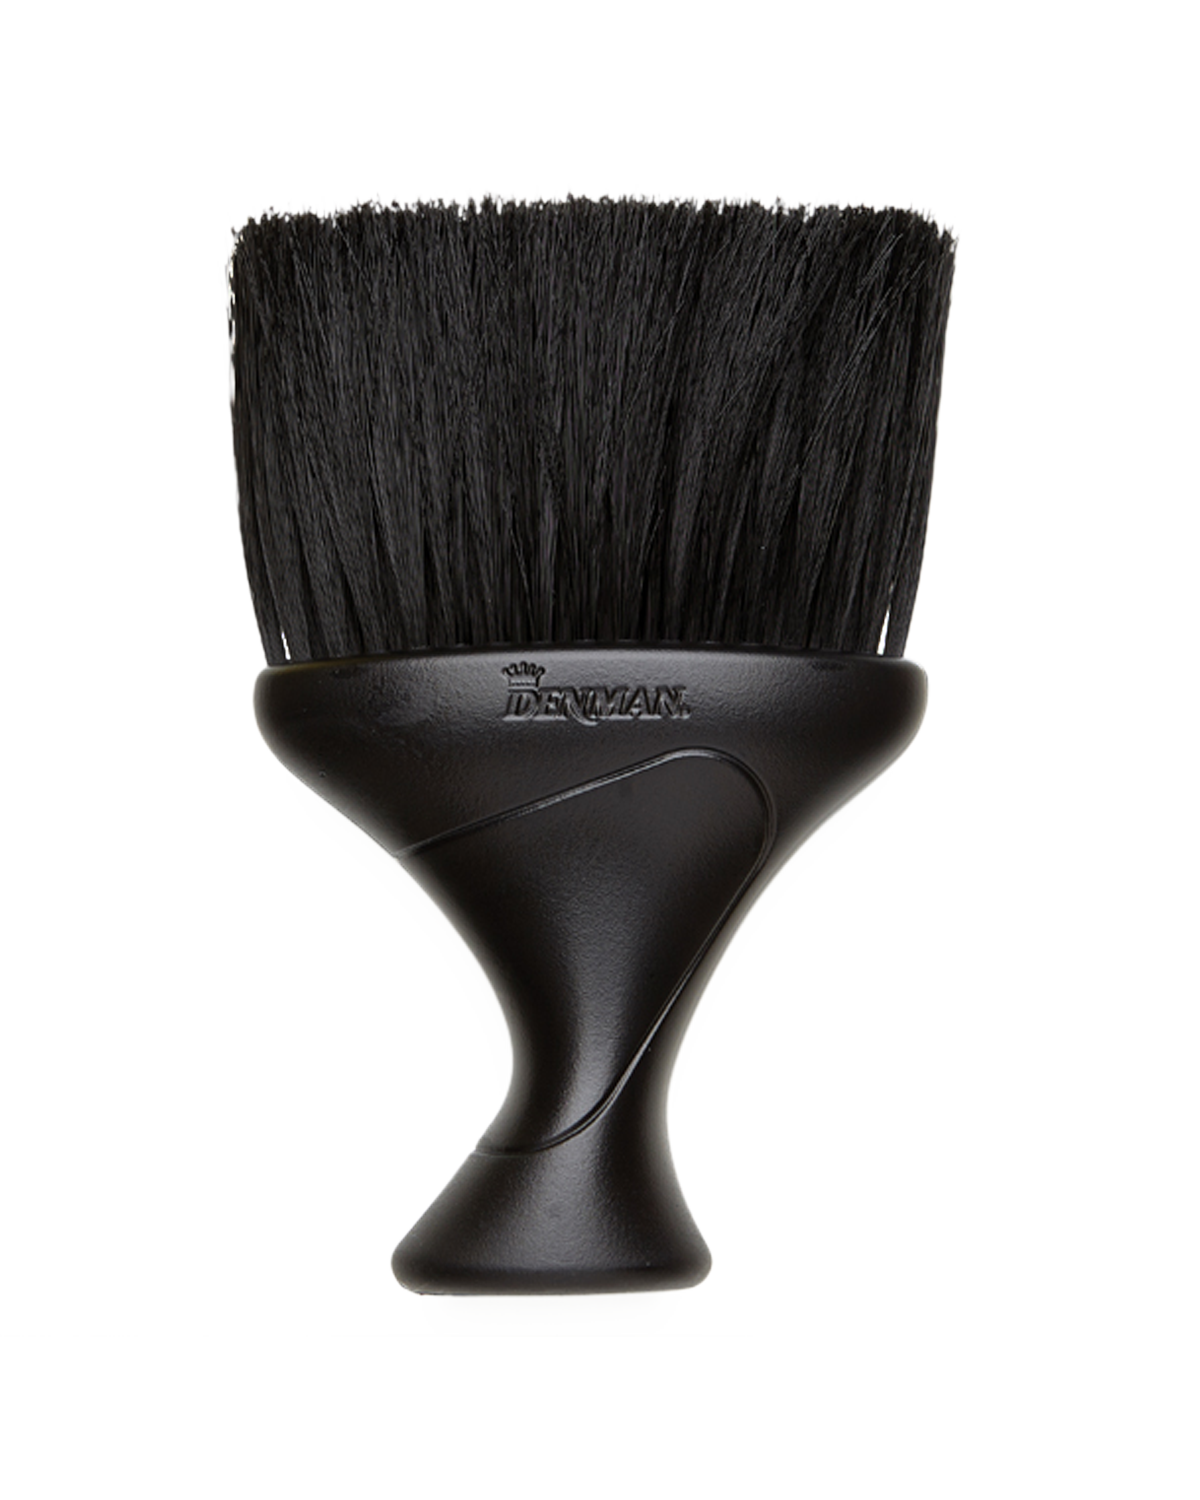 D78 Black Neck Brush